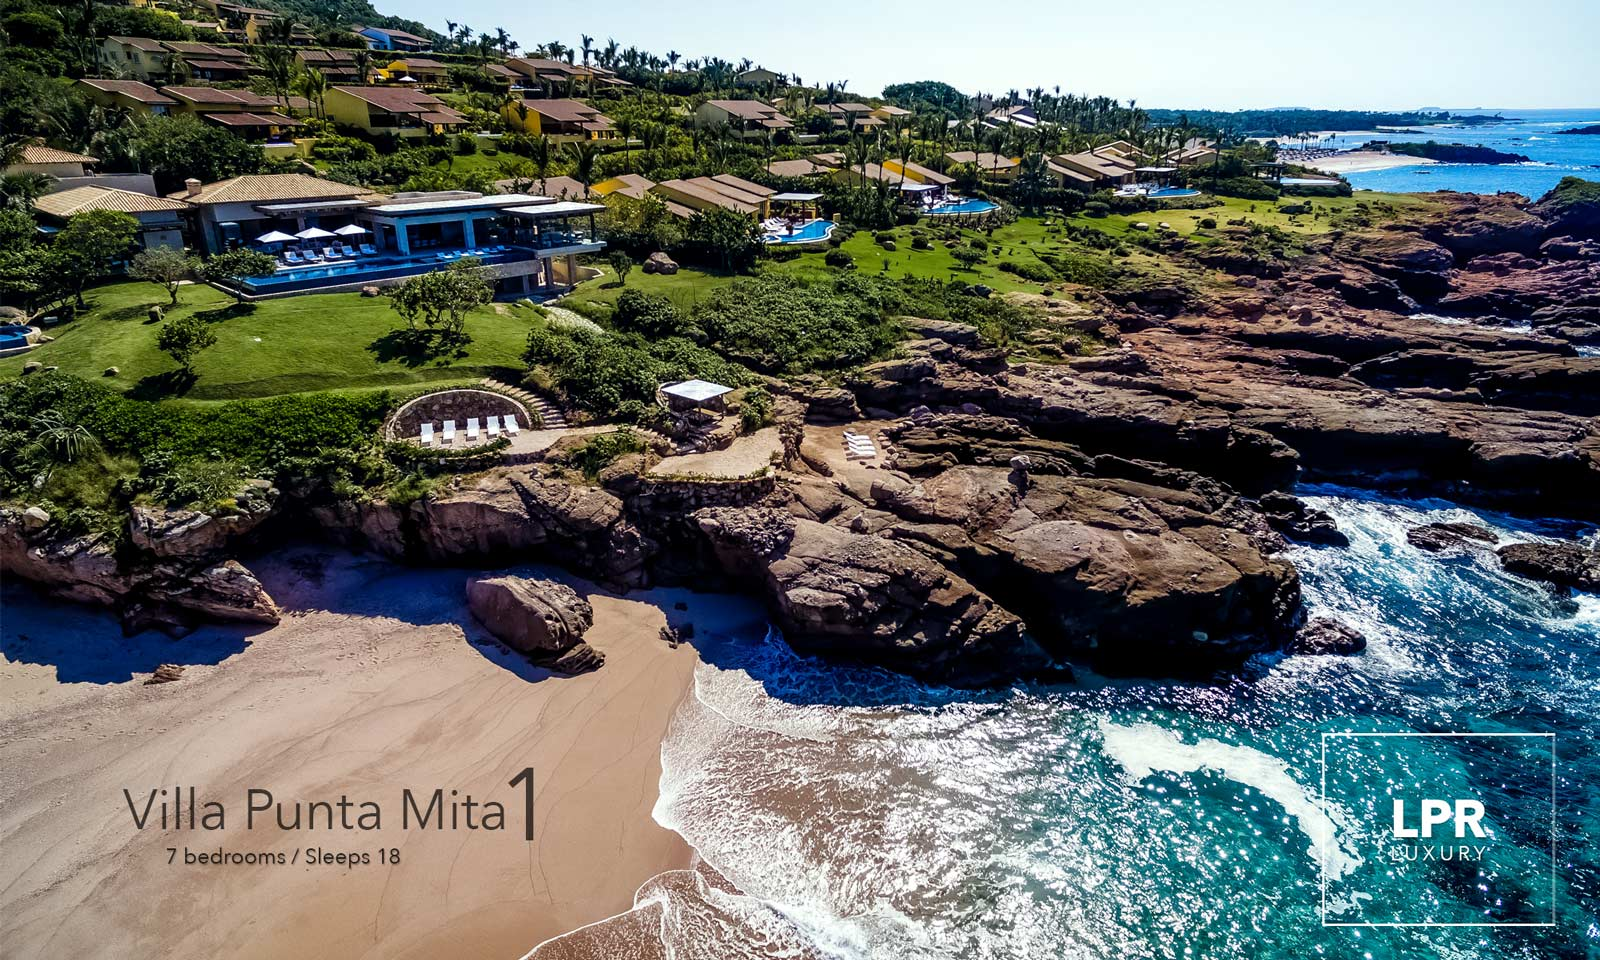 Villa Punta Mita 1 - Luxury Punta Mita Real Estate and Vacation Rentals Villas